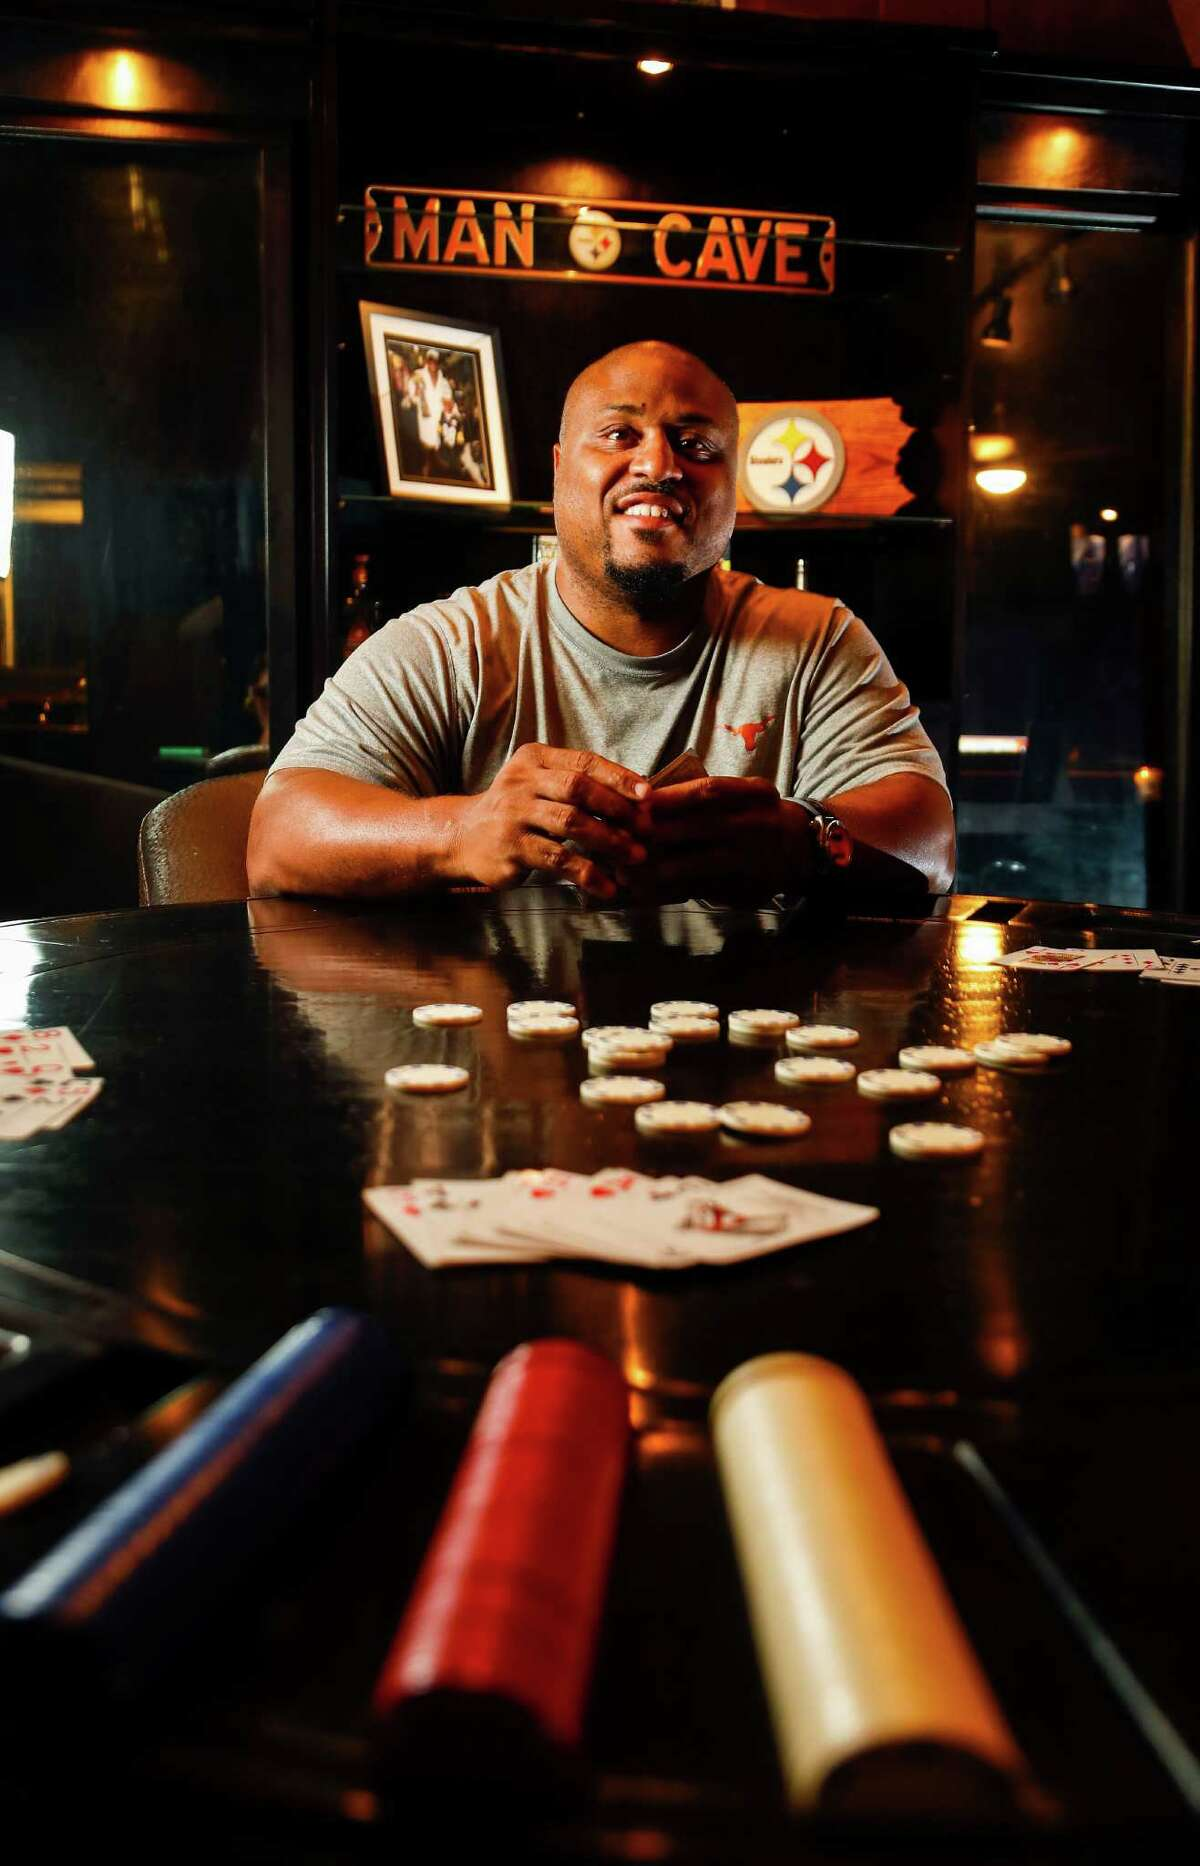 Two-time Super Bowl champ Casey Hampton, who played for the Pittsburgh Steelers, enjoys card games and dominoes in his man cave. Though spare on sports memorabilia, his décor includes an ESPN cover featuring his team, right.